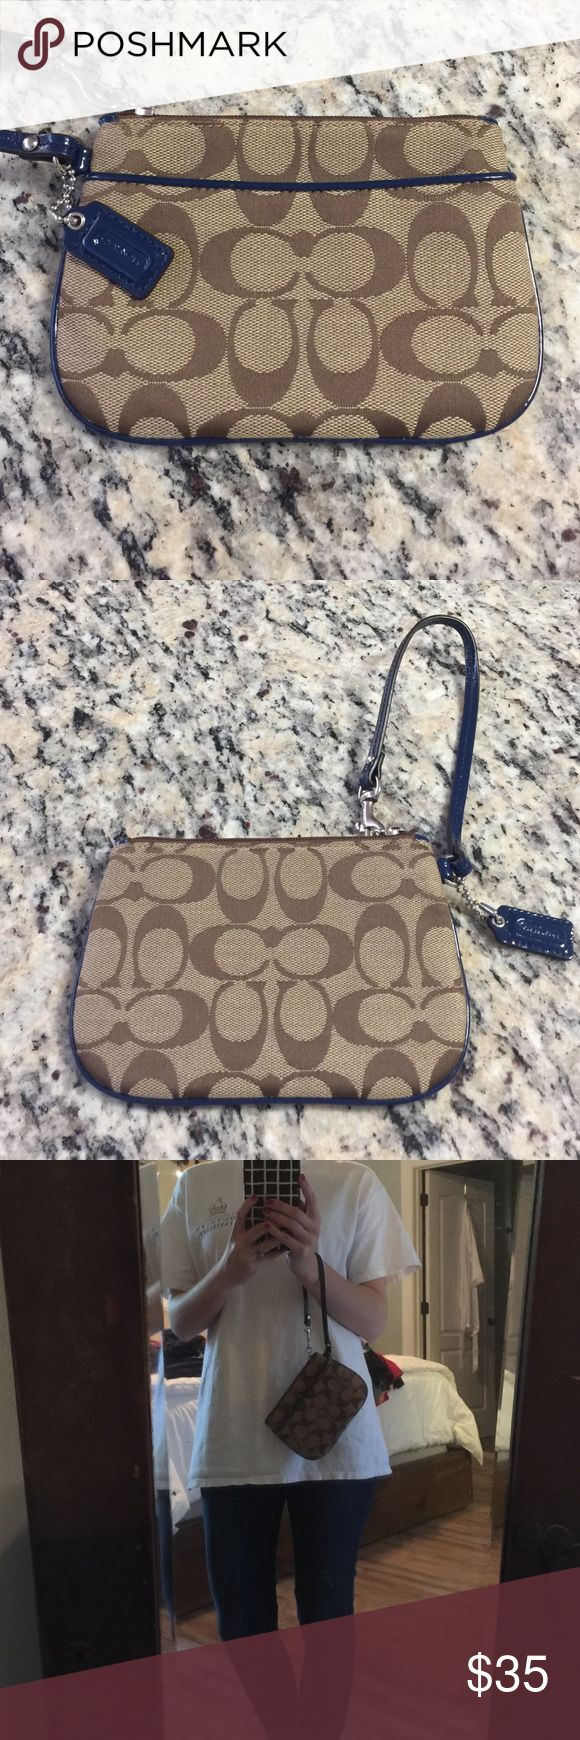 Coach clutch Brown with navy accents. Never used. No tags. Coach Bags Clutches & Wristlets